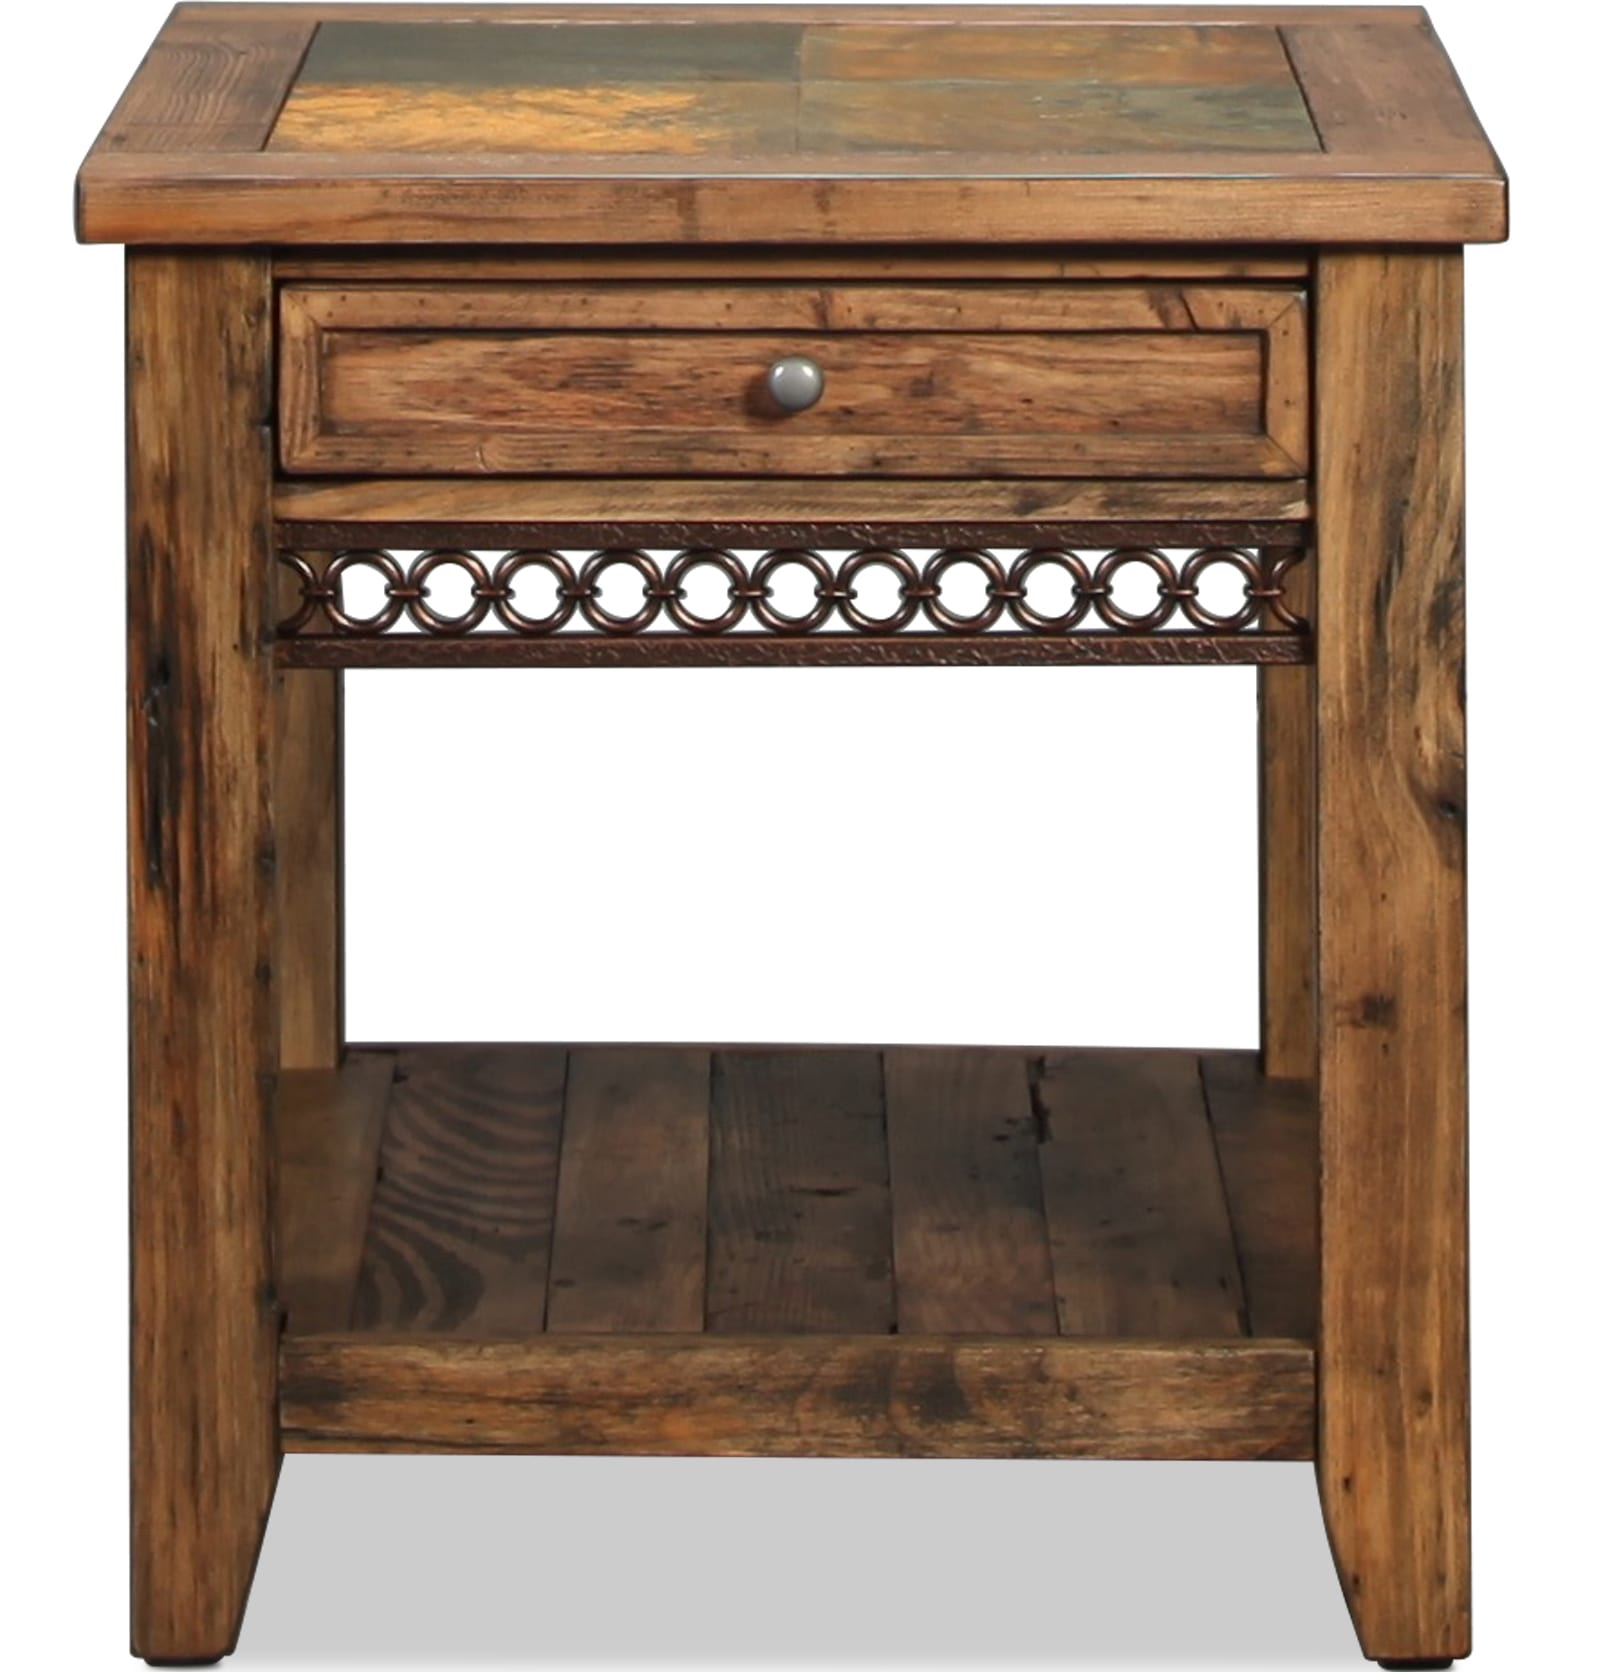 Pierson End Table - Weathered Pine